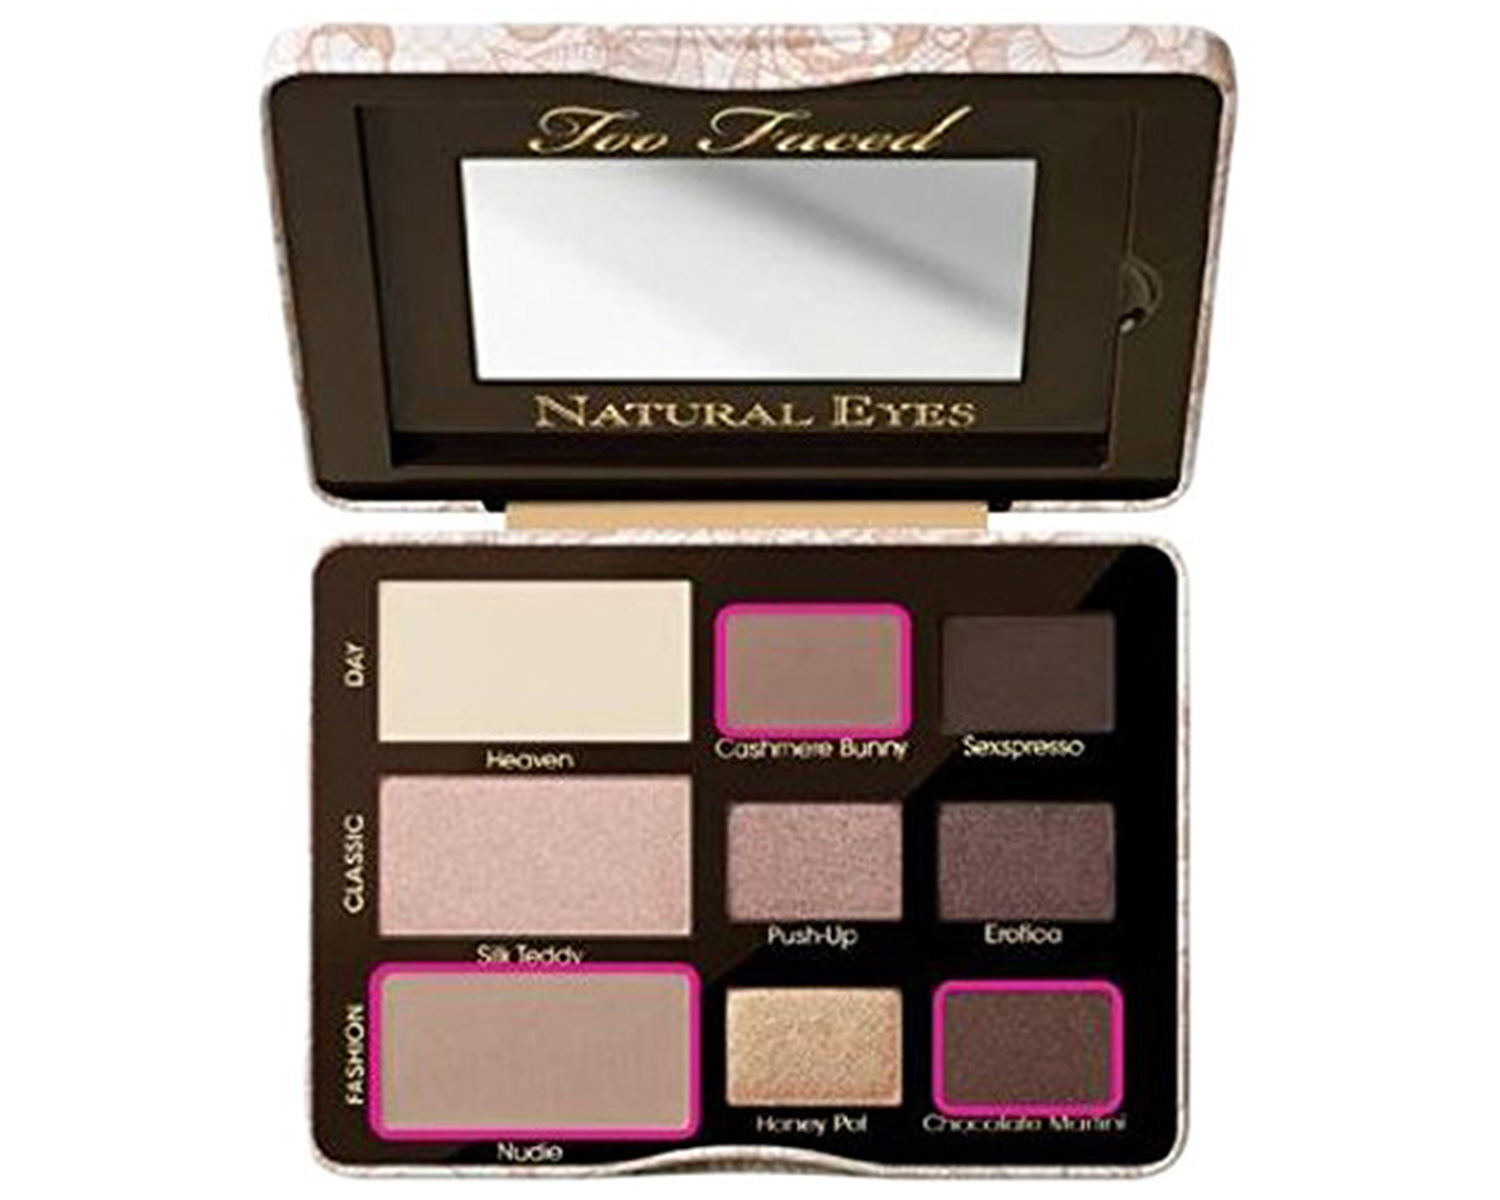 Too Faced Cosmetics Eye Shadow